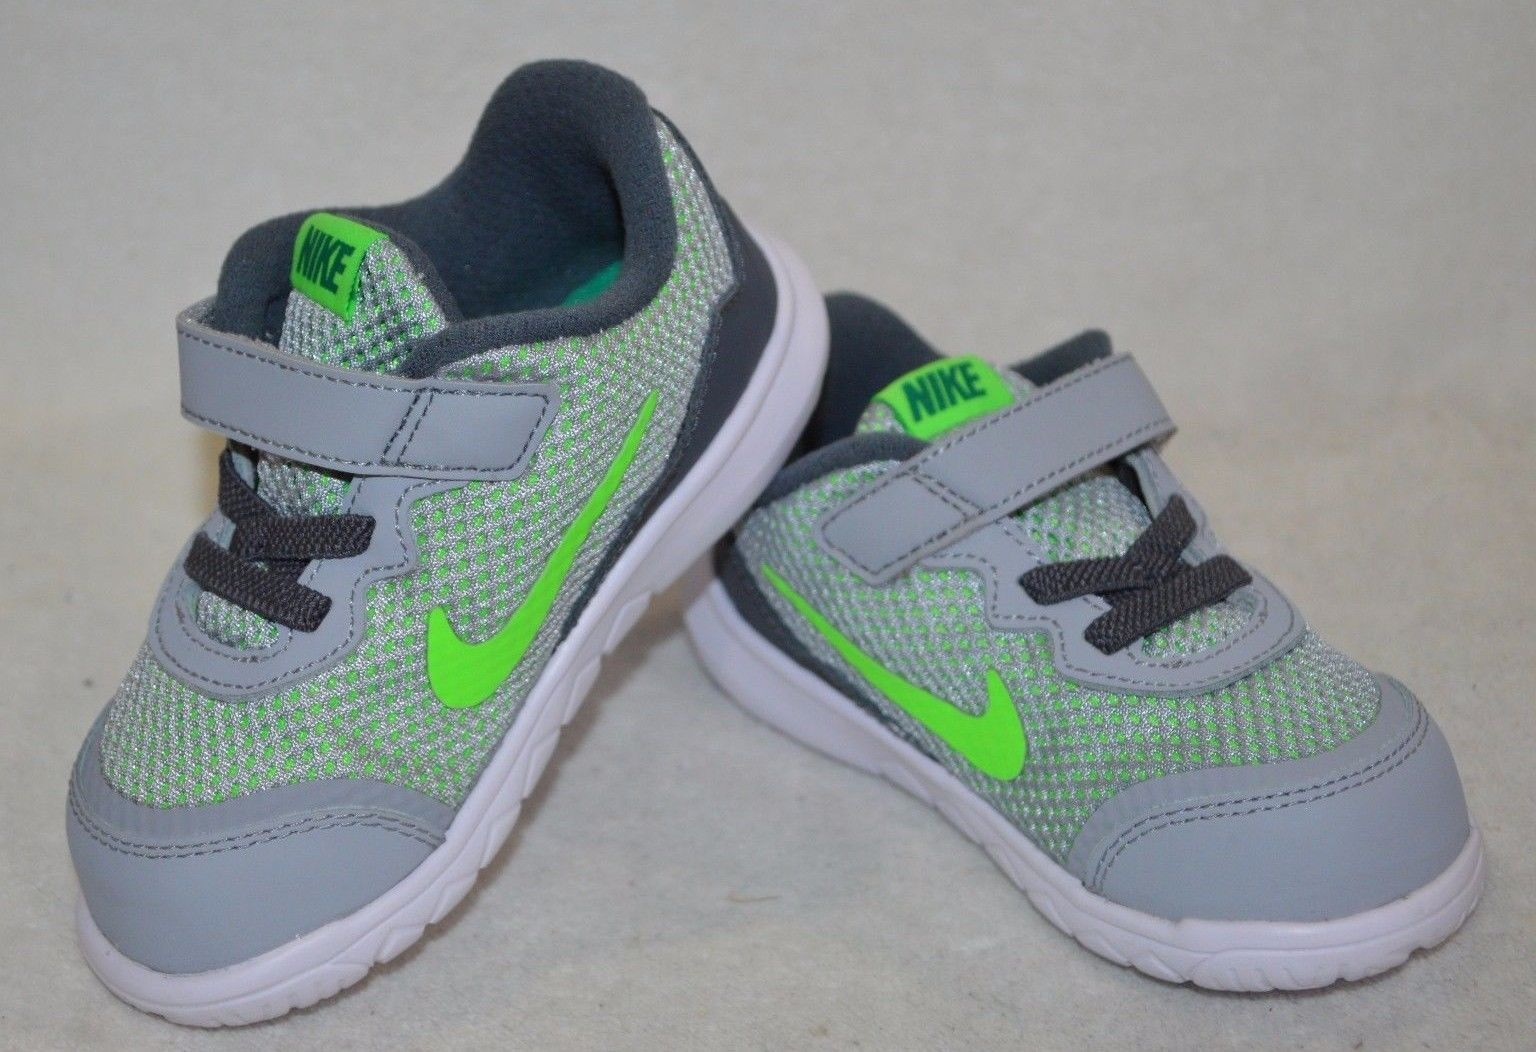 the latest 7ee8e 8a1cc Baby Shoes 147285  Nike Flex Experience 4 (Tdv) Grey V-Green Toddler Boy S  Running Shoes-Asst Size -  BUY IT NOW ONLY   34.99 on eBay!